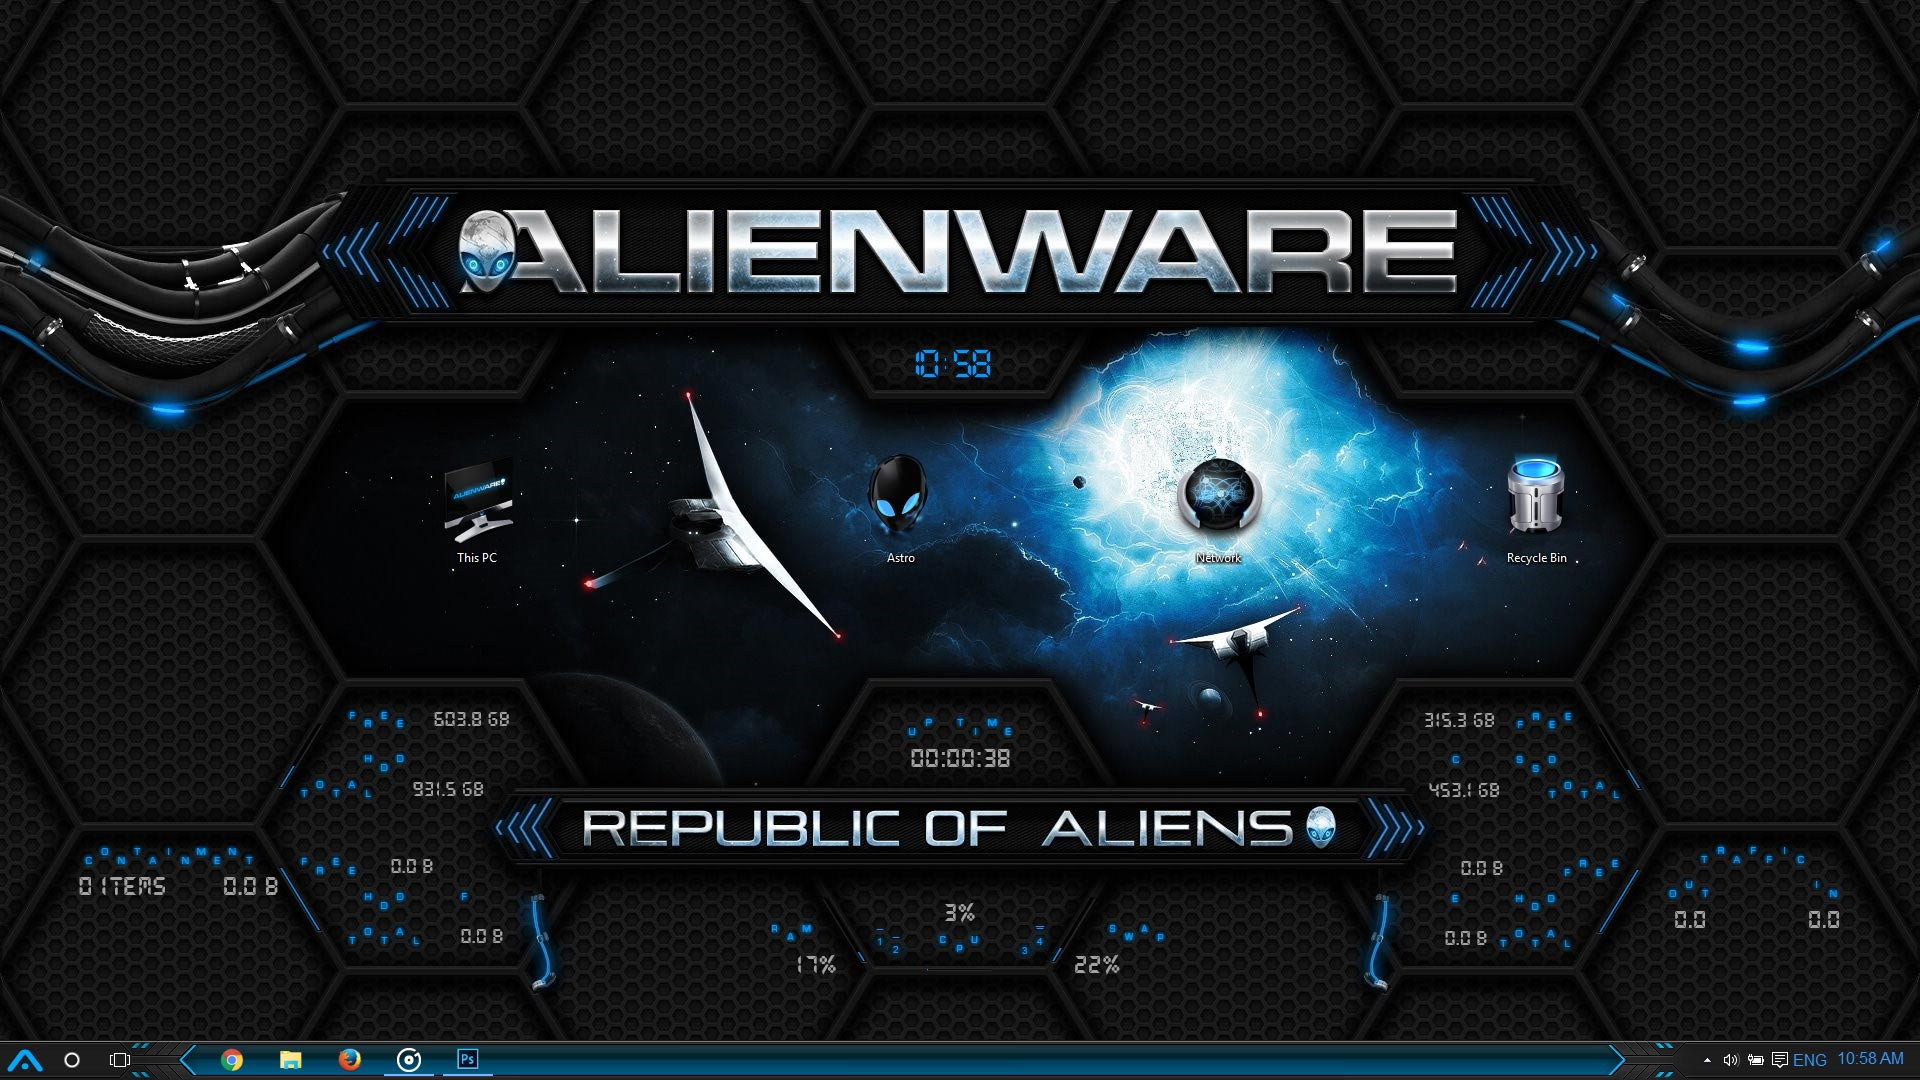 Rog Animated Wallpaper Ultimate Alienware Windows 10 Theme